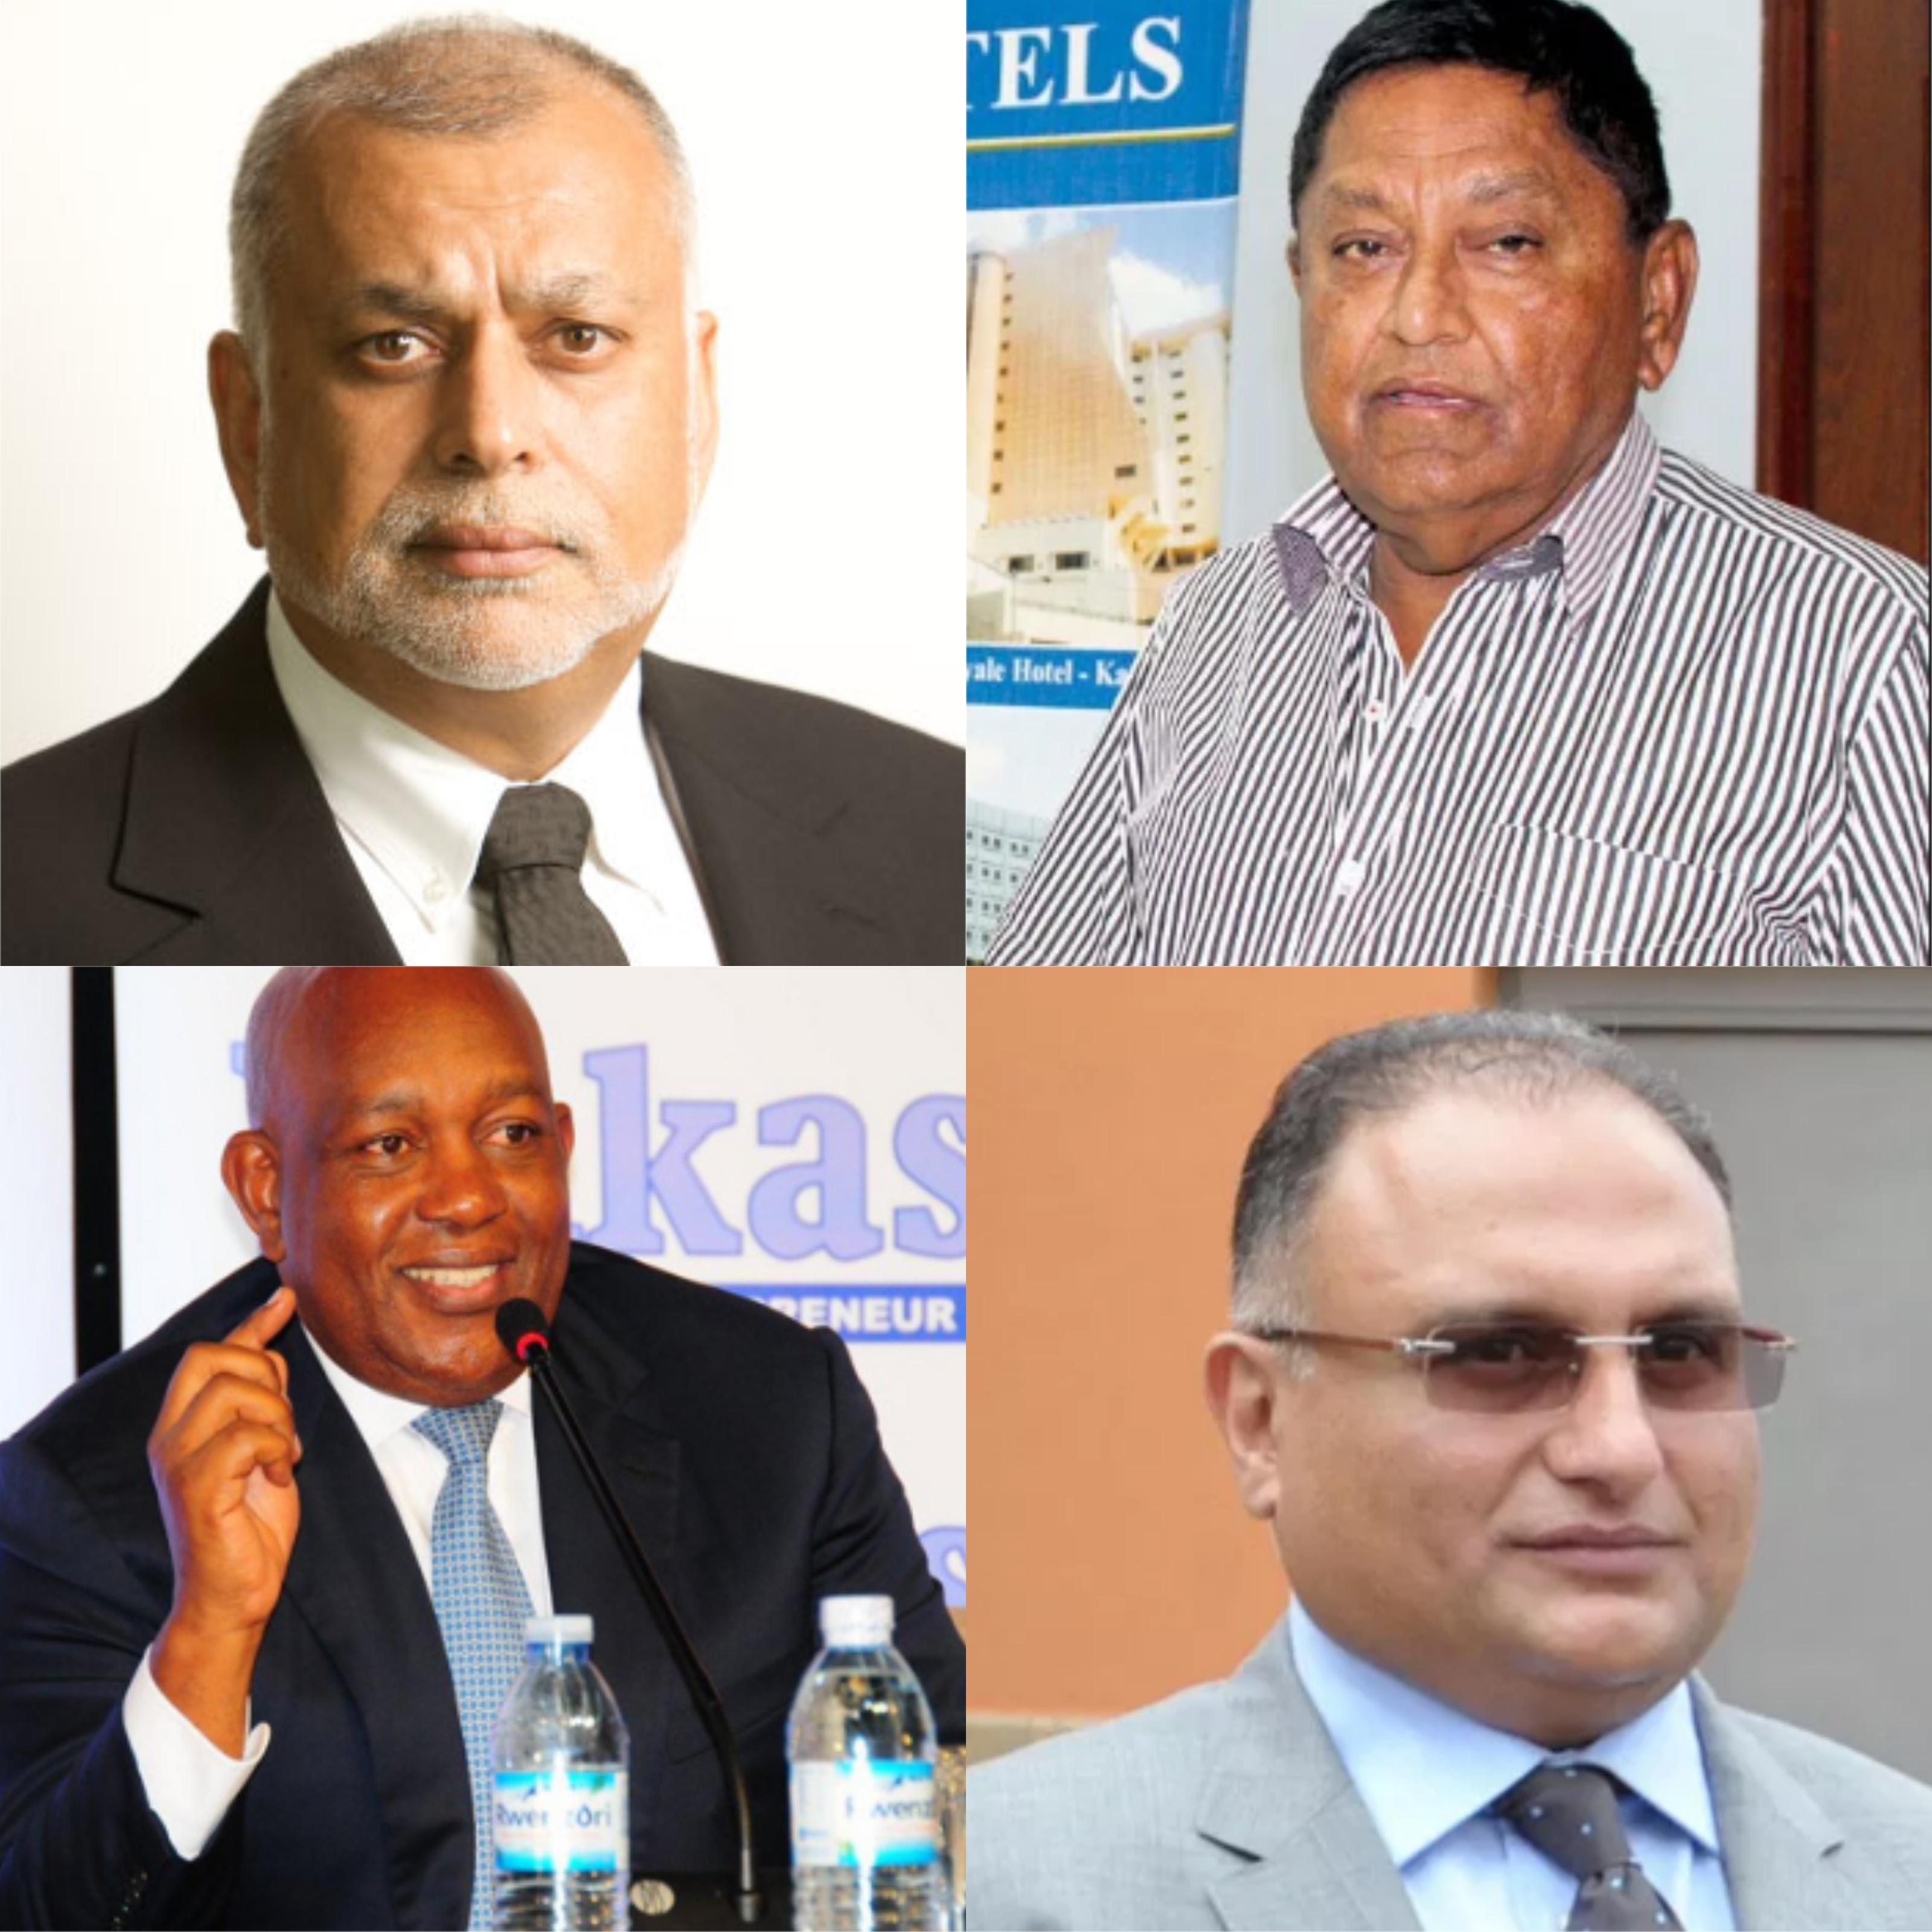 Sudhir remains top in Forbes 2018 rich list – PML Daily